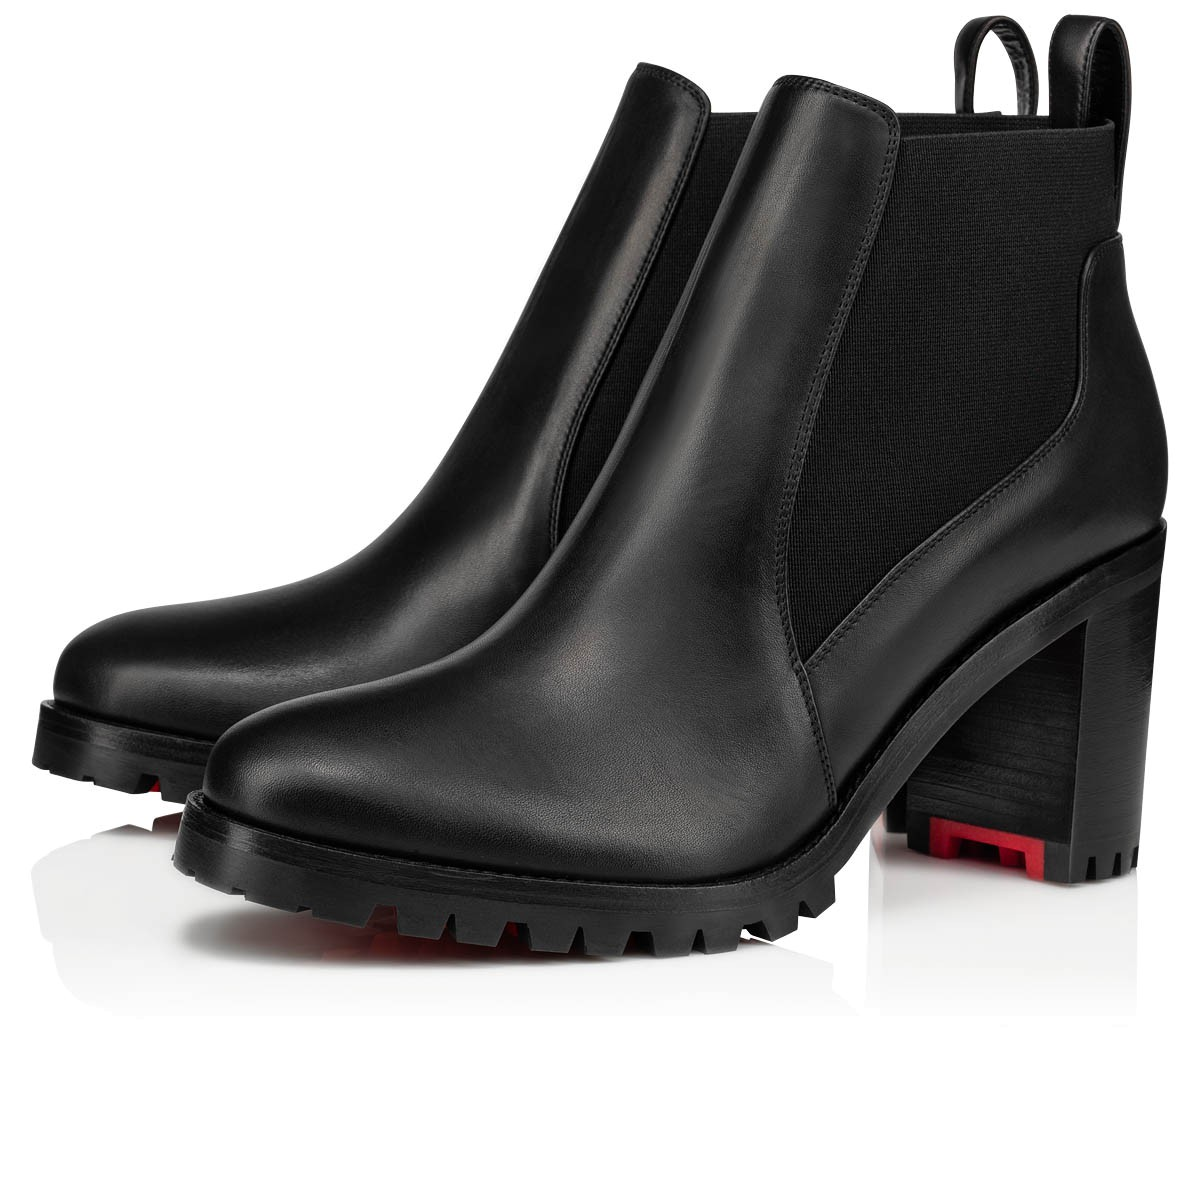 separation shoes 19f1b b5958 Marchacroche 70 Black Leather - Women Shoes - Christian Louboutin